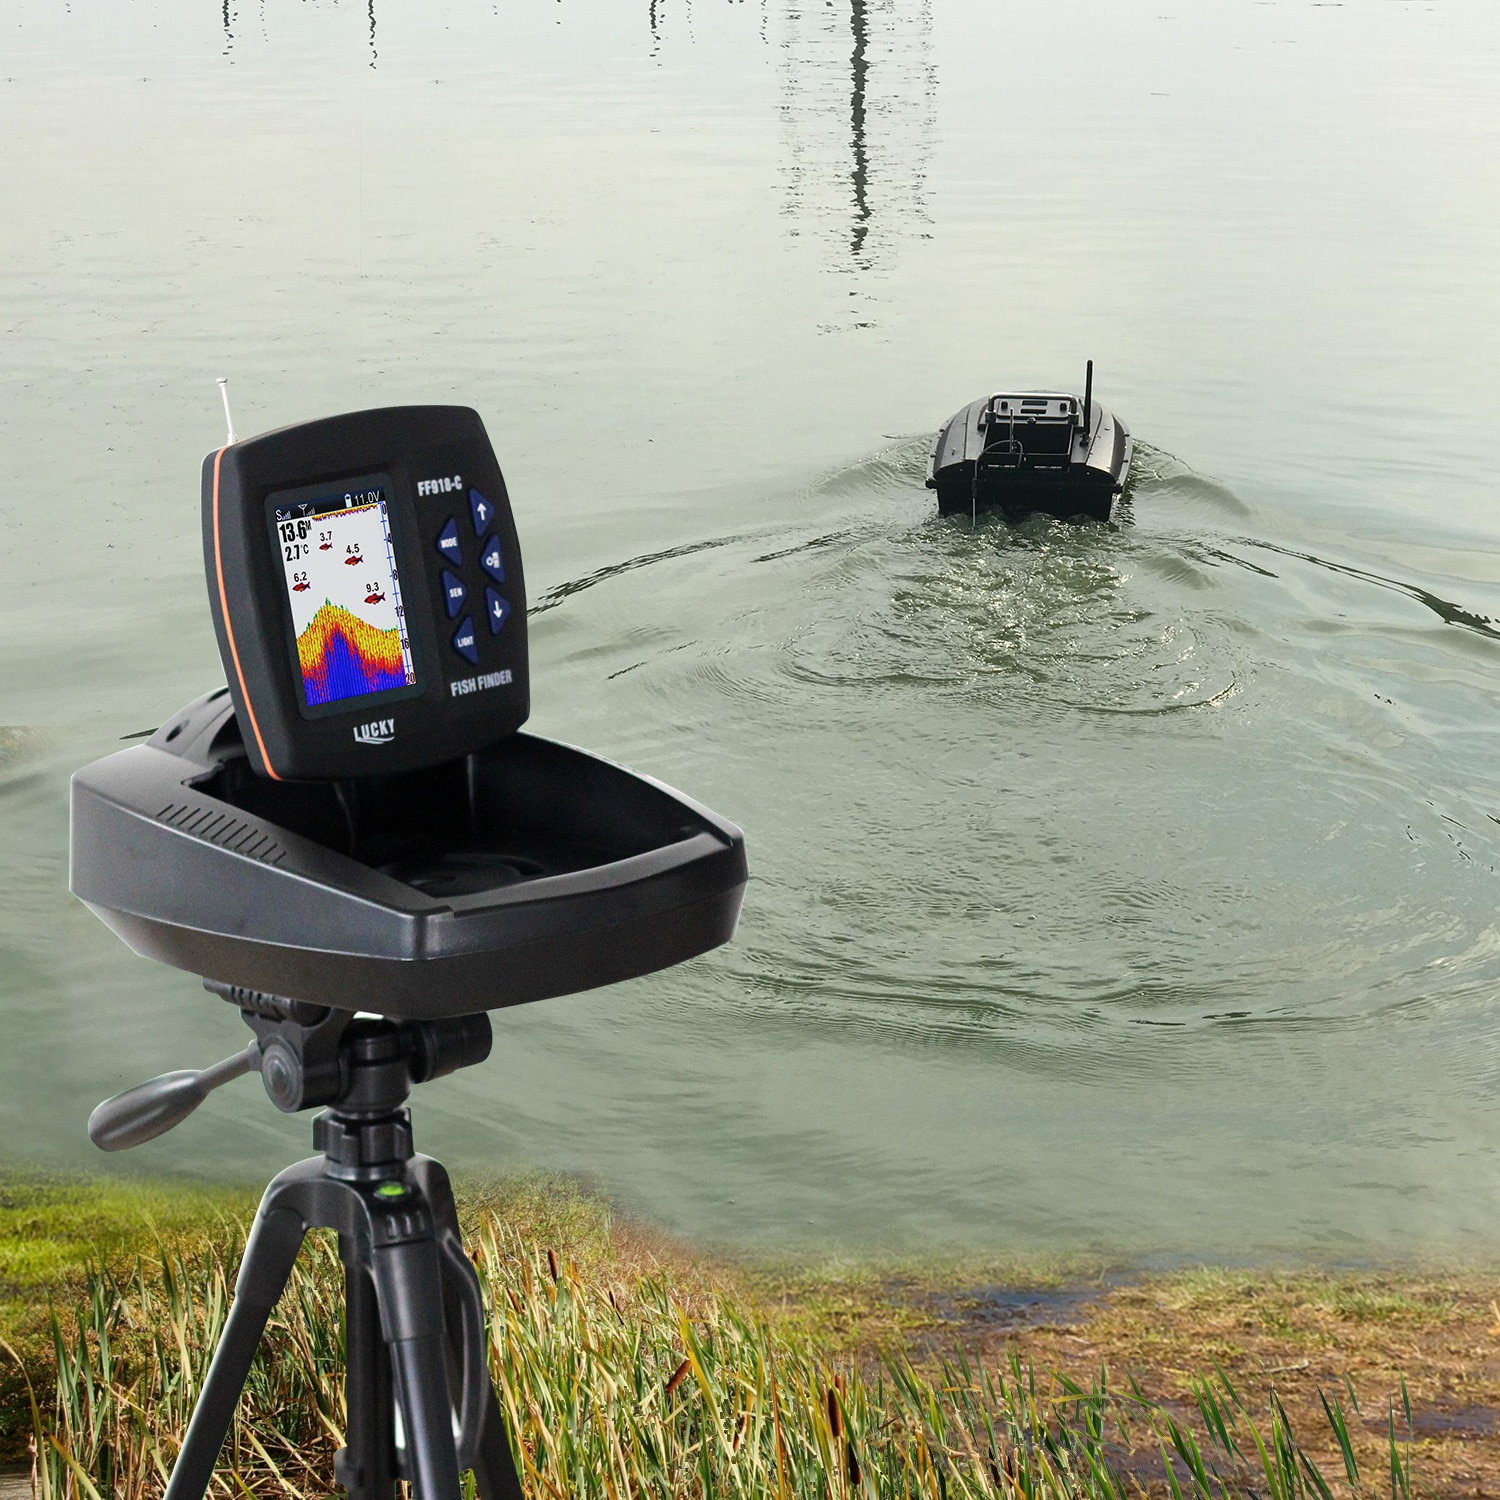 Lucky FF918 Wireless Remote Control Boat Fish Finder 300m/980ft wireless operating range echo sounder enlarge